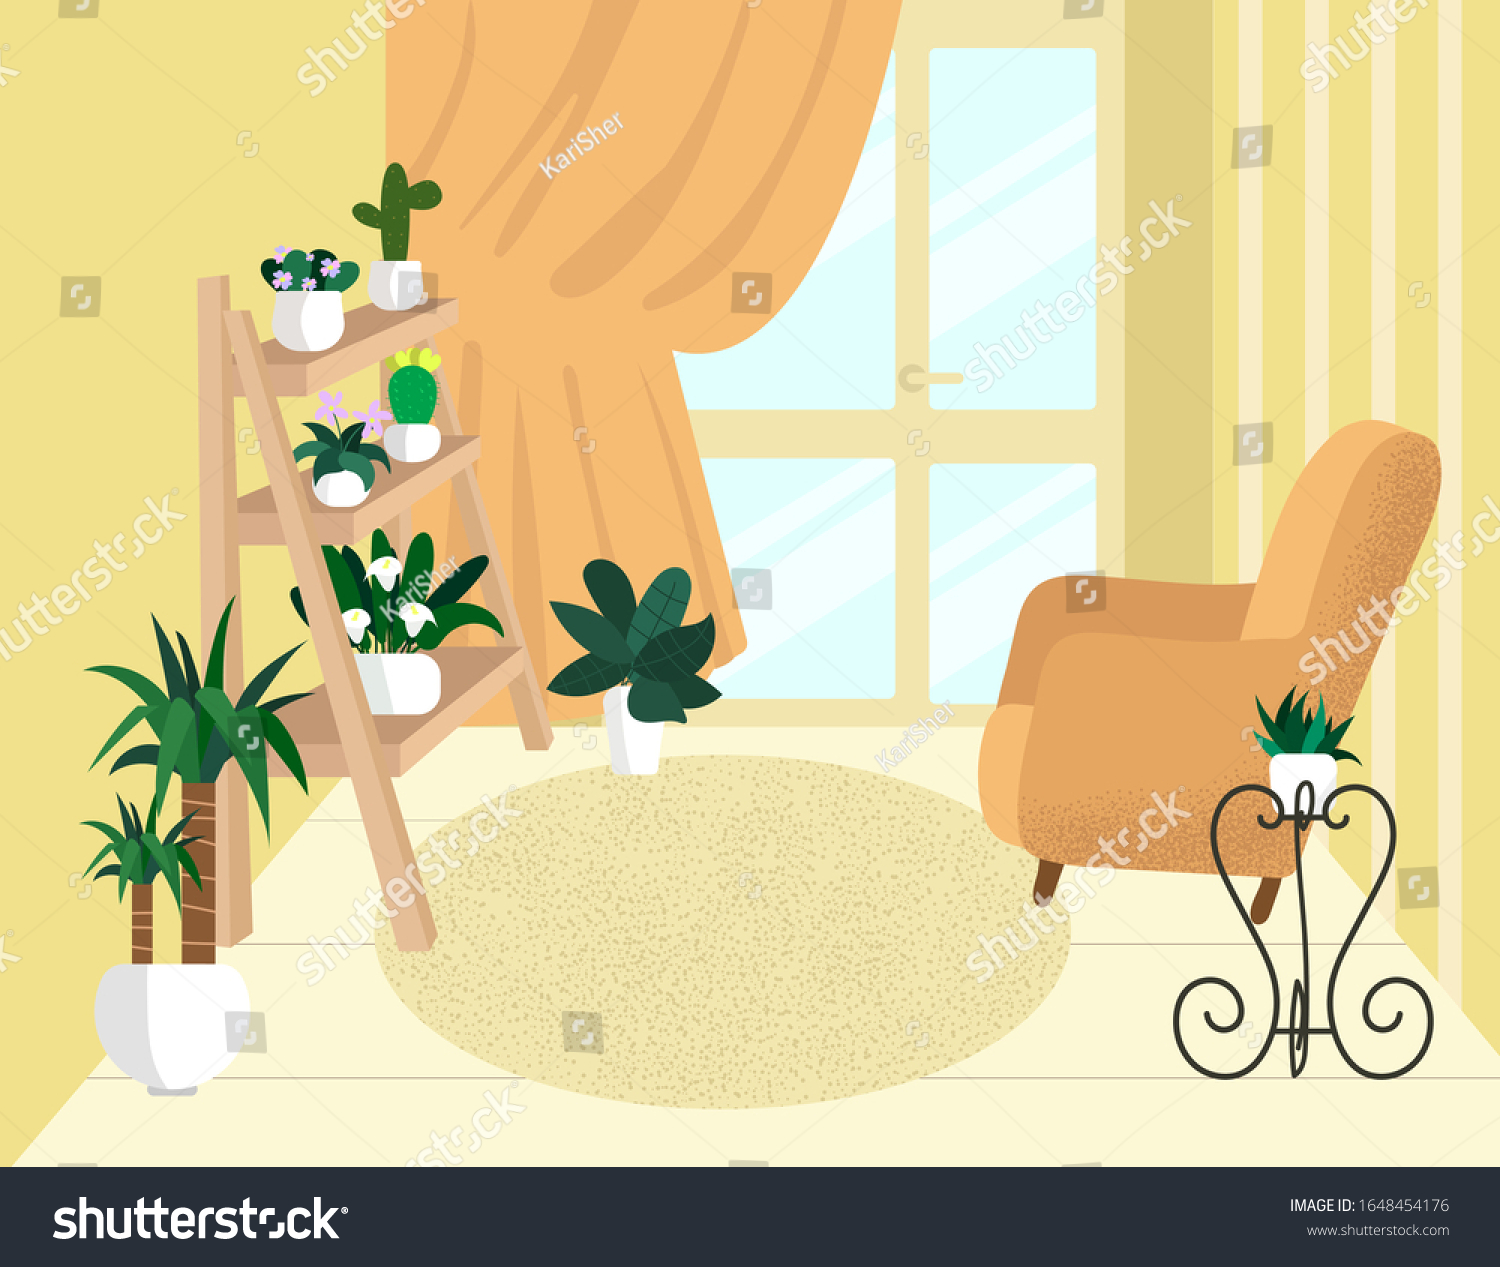 Indoor Flowers Room Cute Home Interior Royalty Free Stock Image